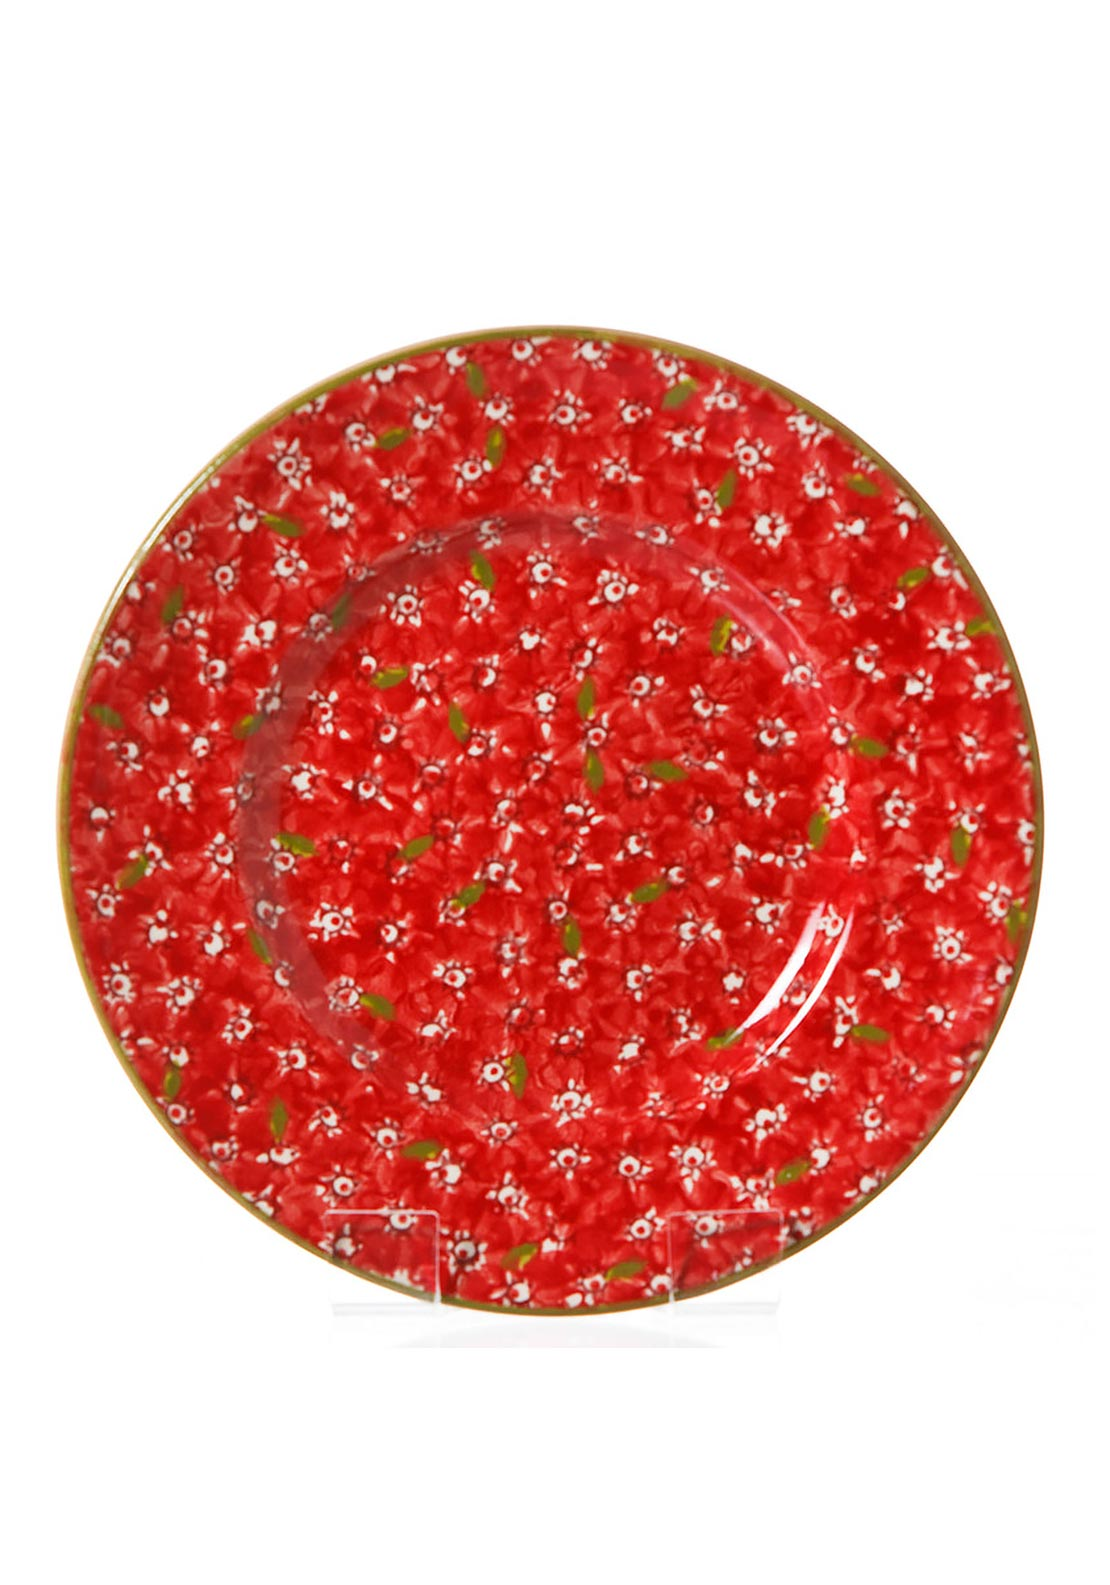 Nicholas Mosse Pottery Red Lawn Everyday Plate